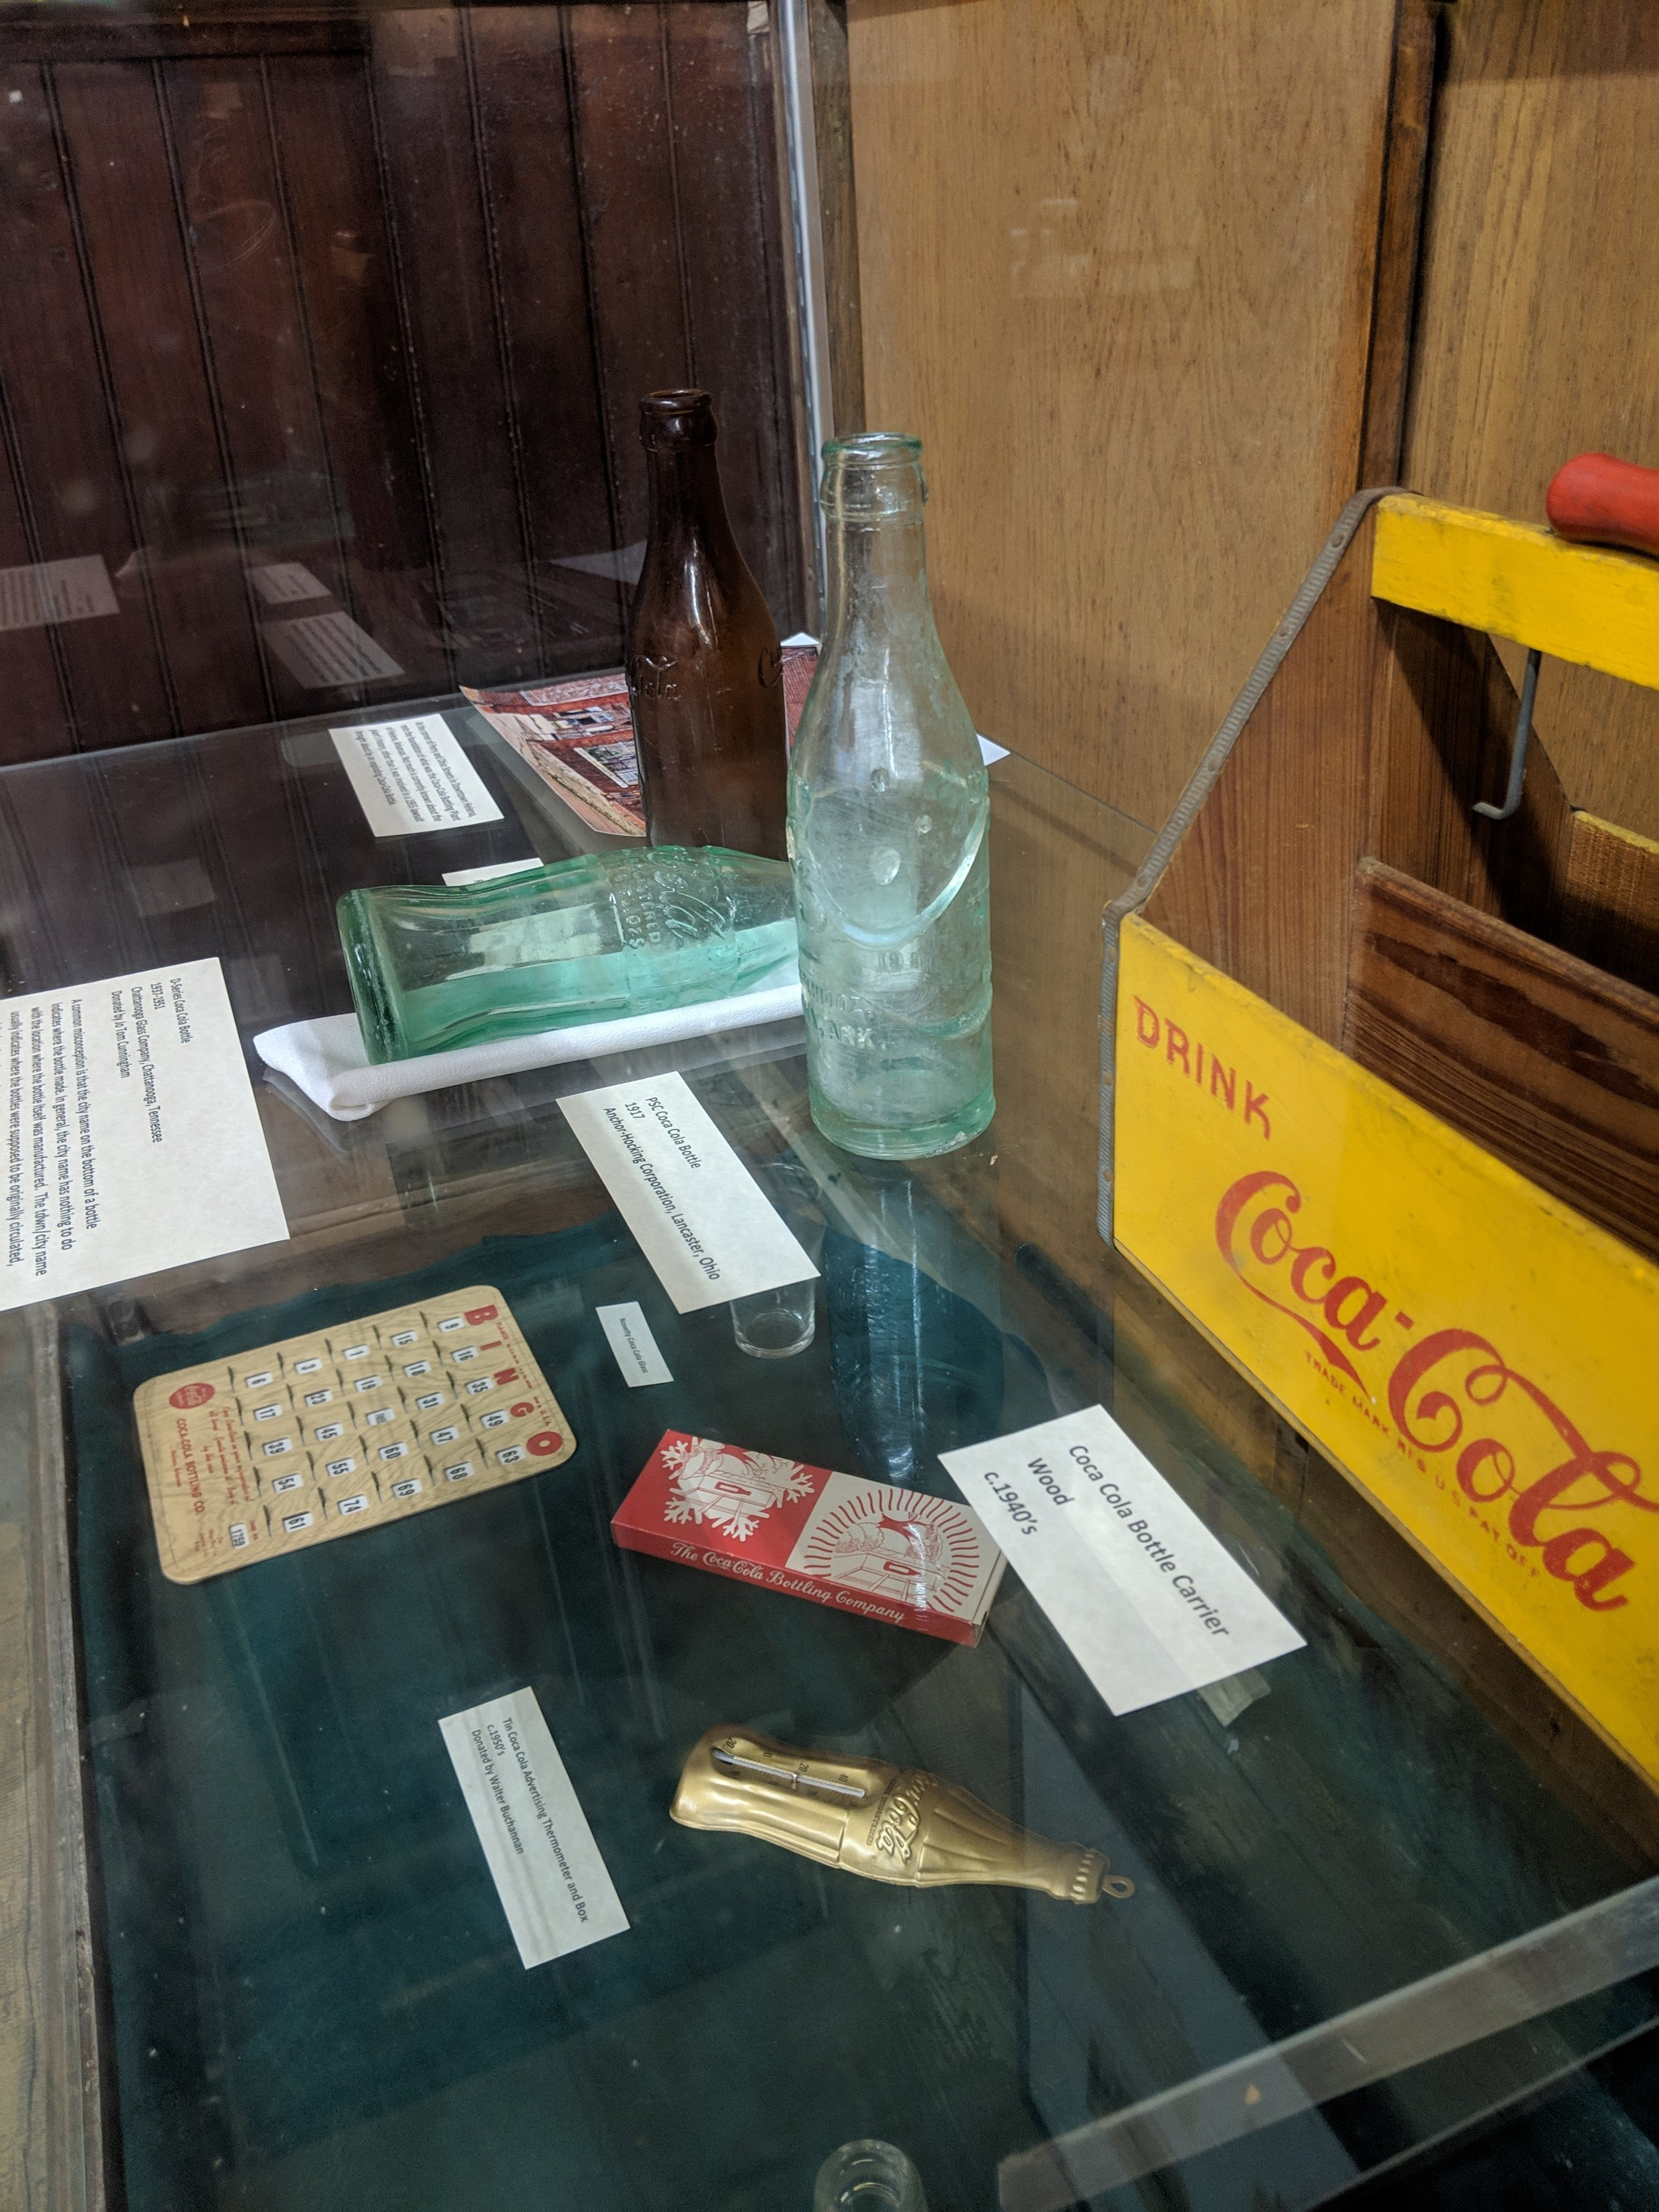 Local Businesses and Organizations - We have exhibits for many local businesses and churches, some of which almost older than the Library.